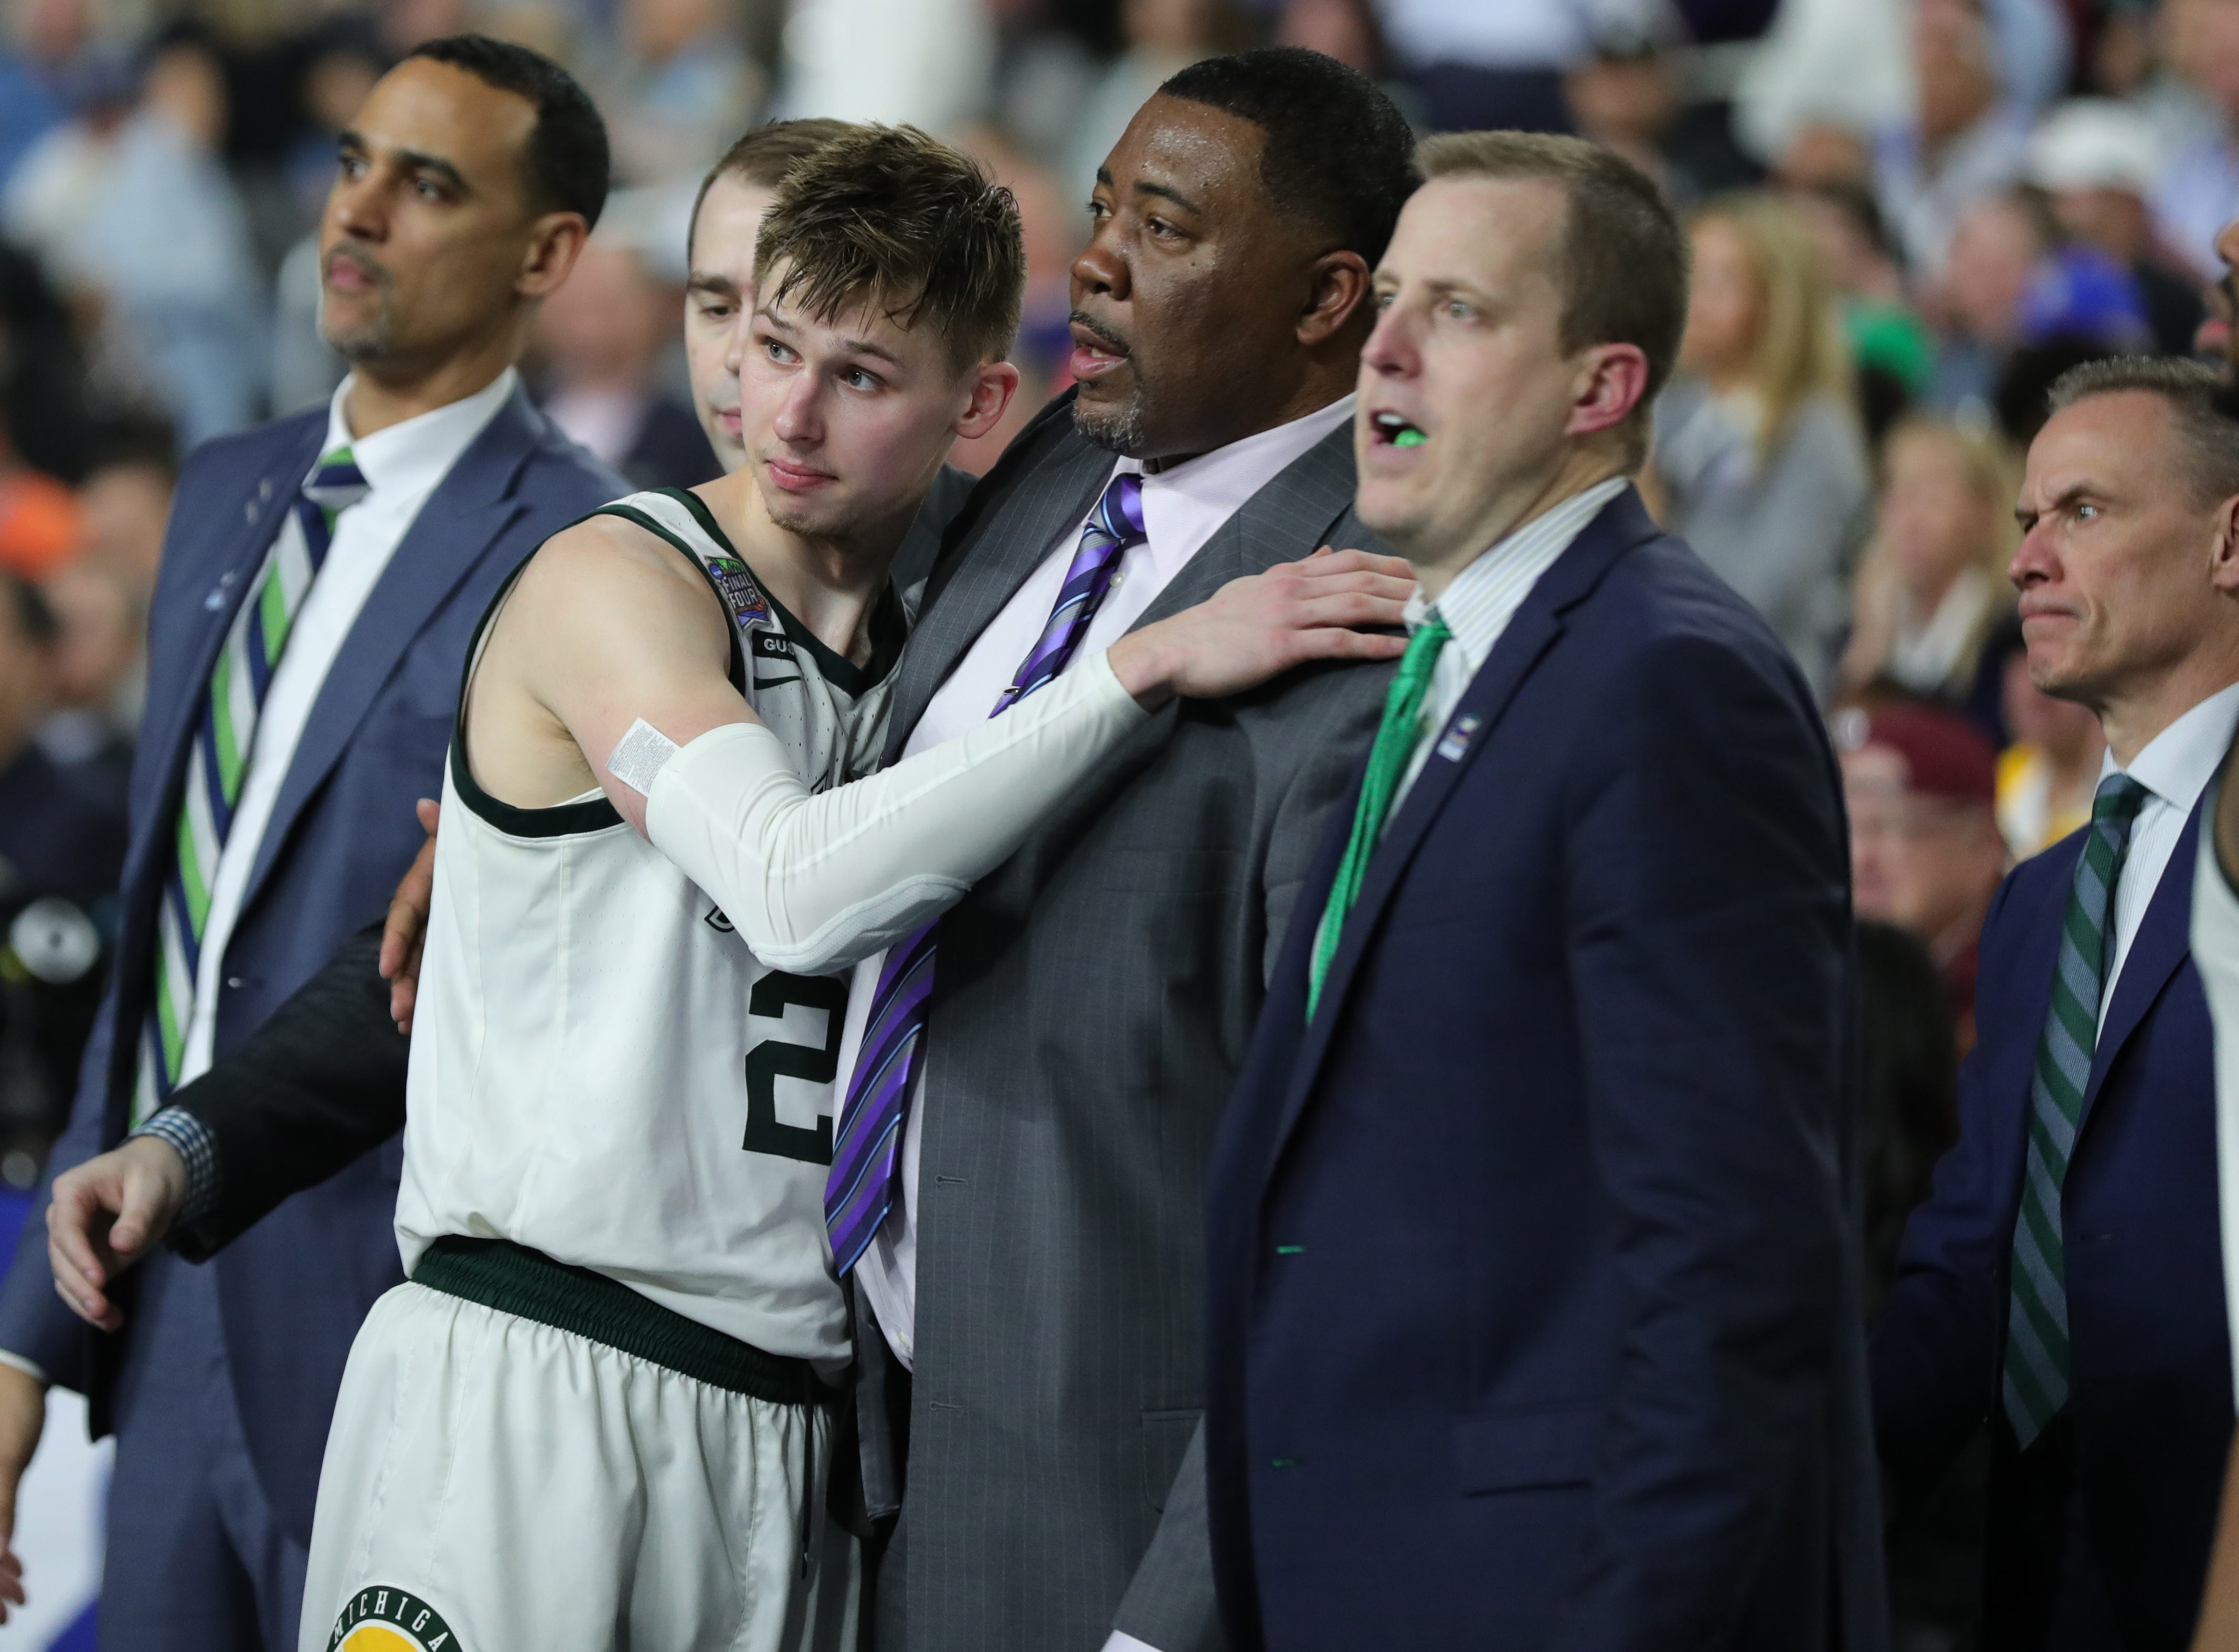 Michigan State guard Matt McQuaid (20) watches from the sidelines in the second half of the Final Four game at U.S. Bank Stadium in Minneapolis, Minnesota on Saturday, April 06, 2019.